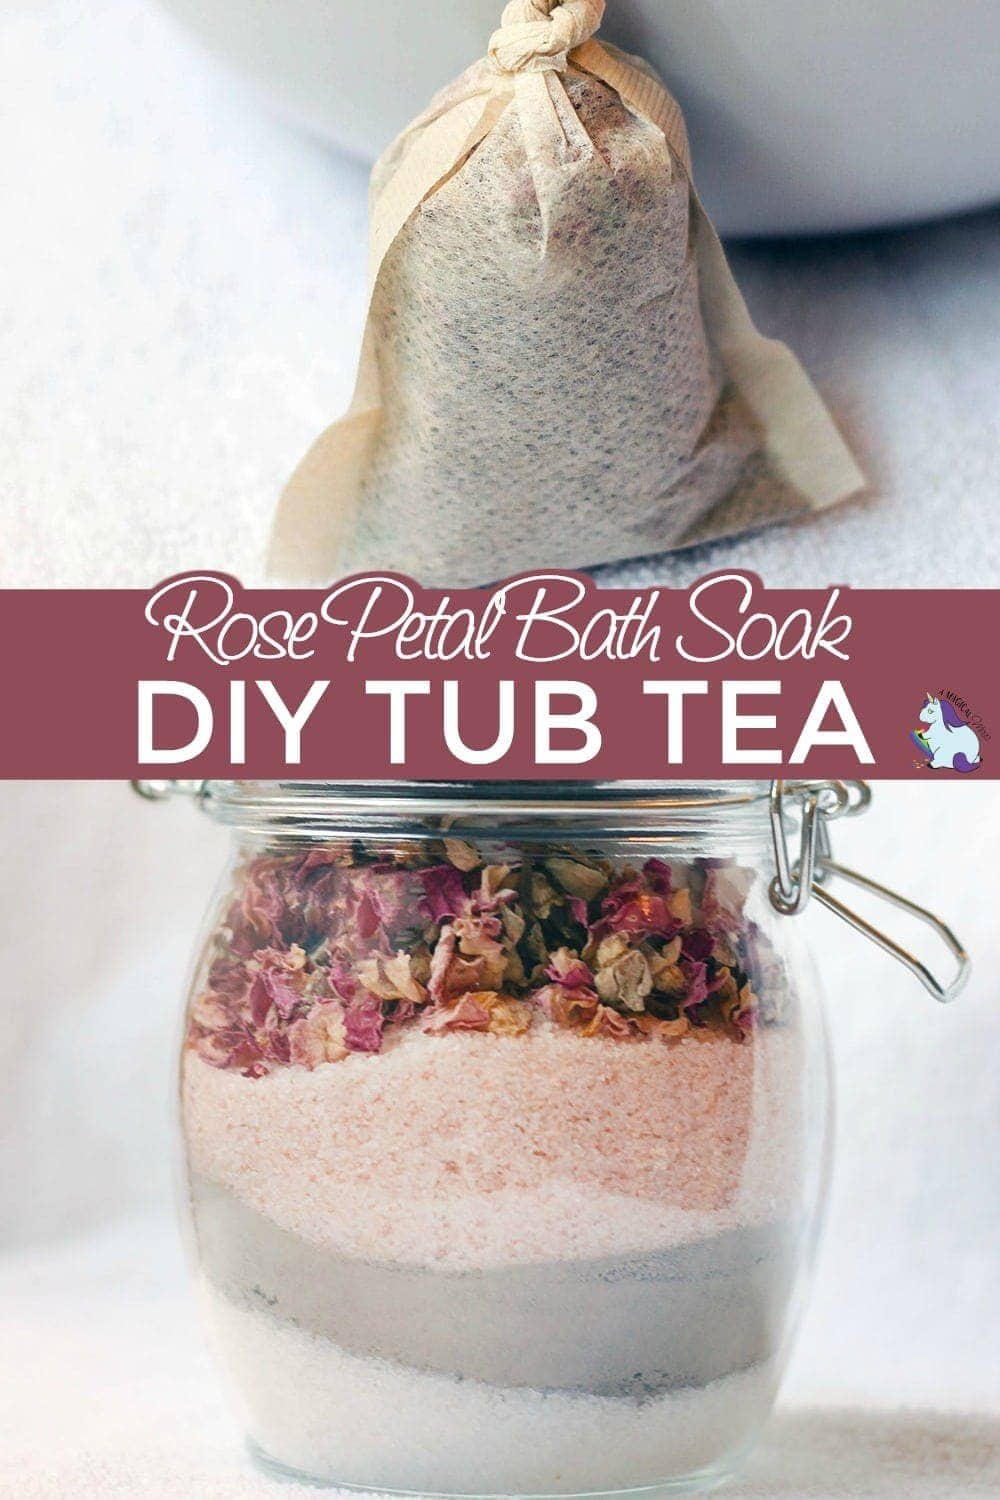 Rose petal bath soak and a tea bag full of tub tea